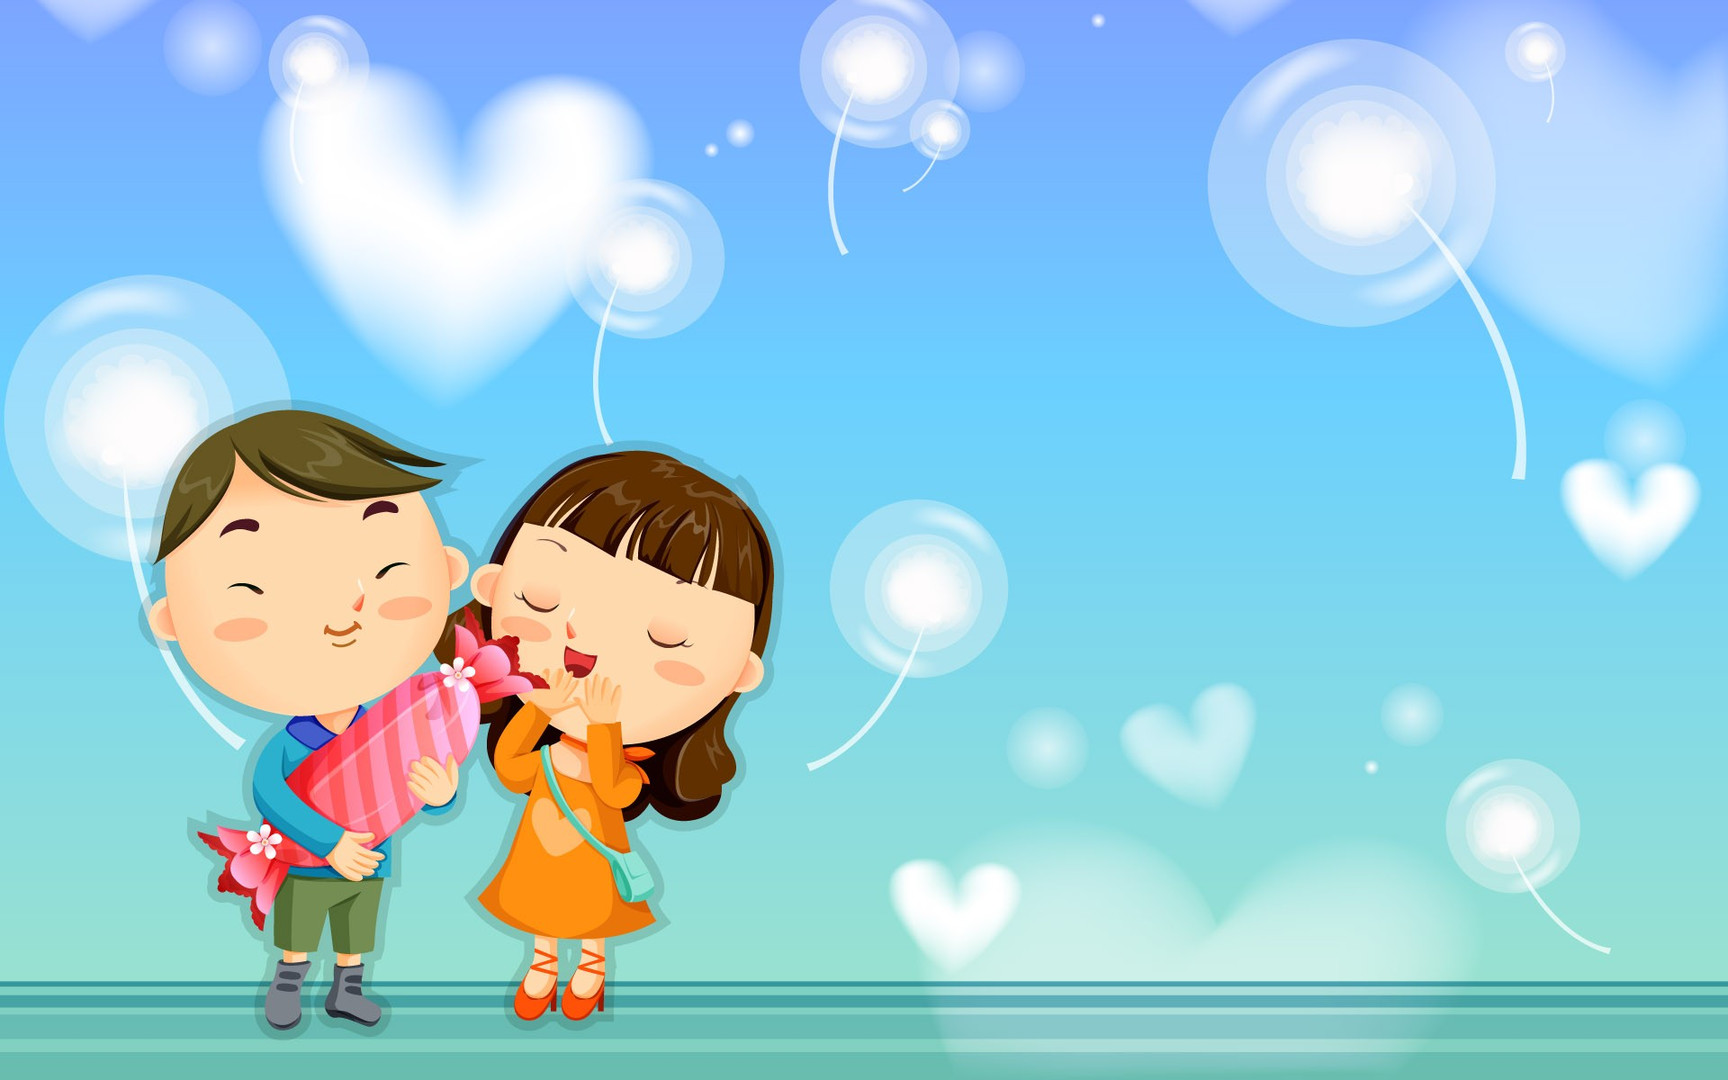 Love U cartoon Wallpaper : cartoon Love Wallpapers - Wallpaper, High Definition, High Quality, Widescreen